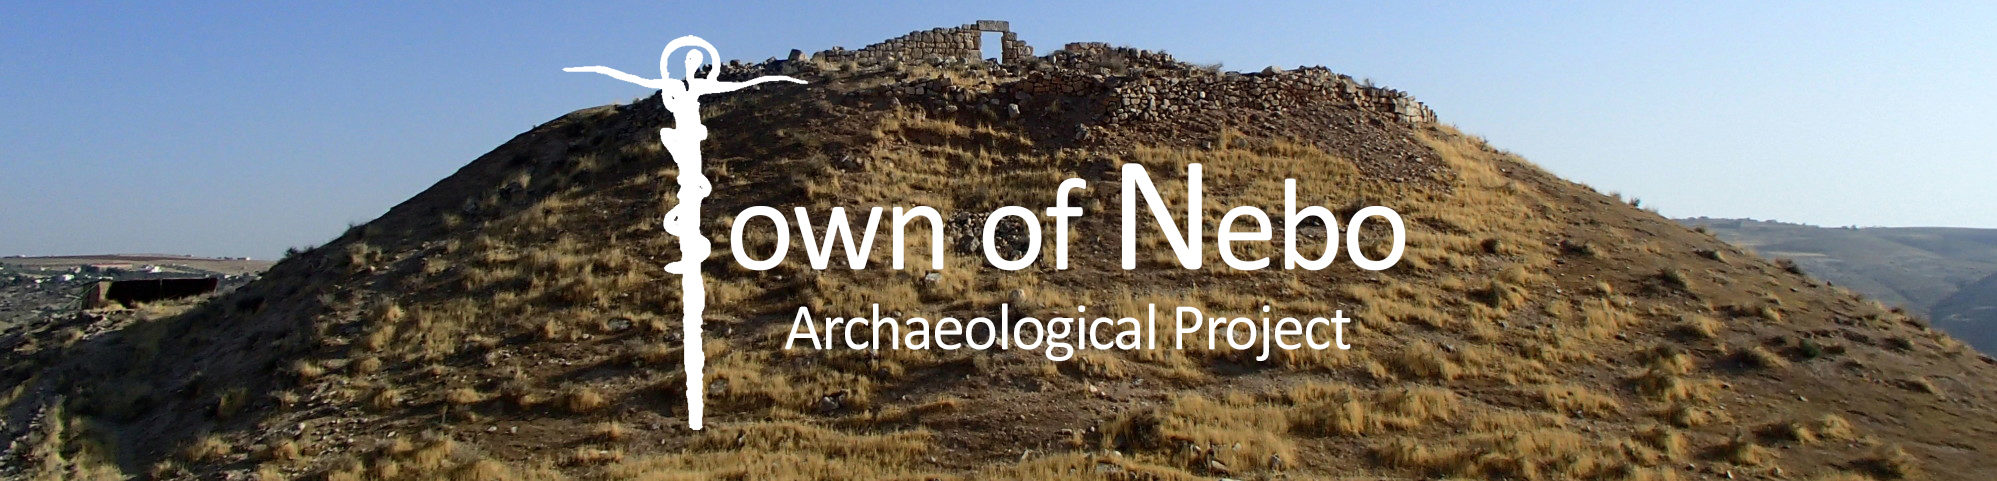 Town of Nebo Archaeological Project